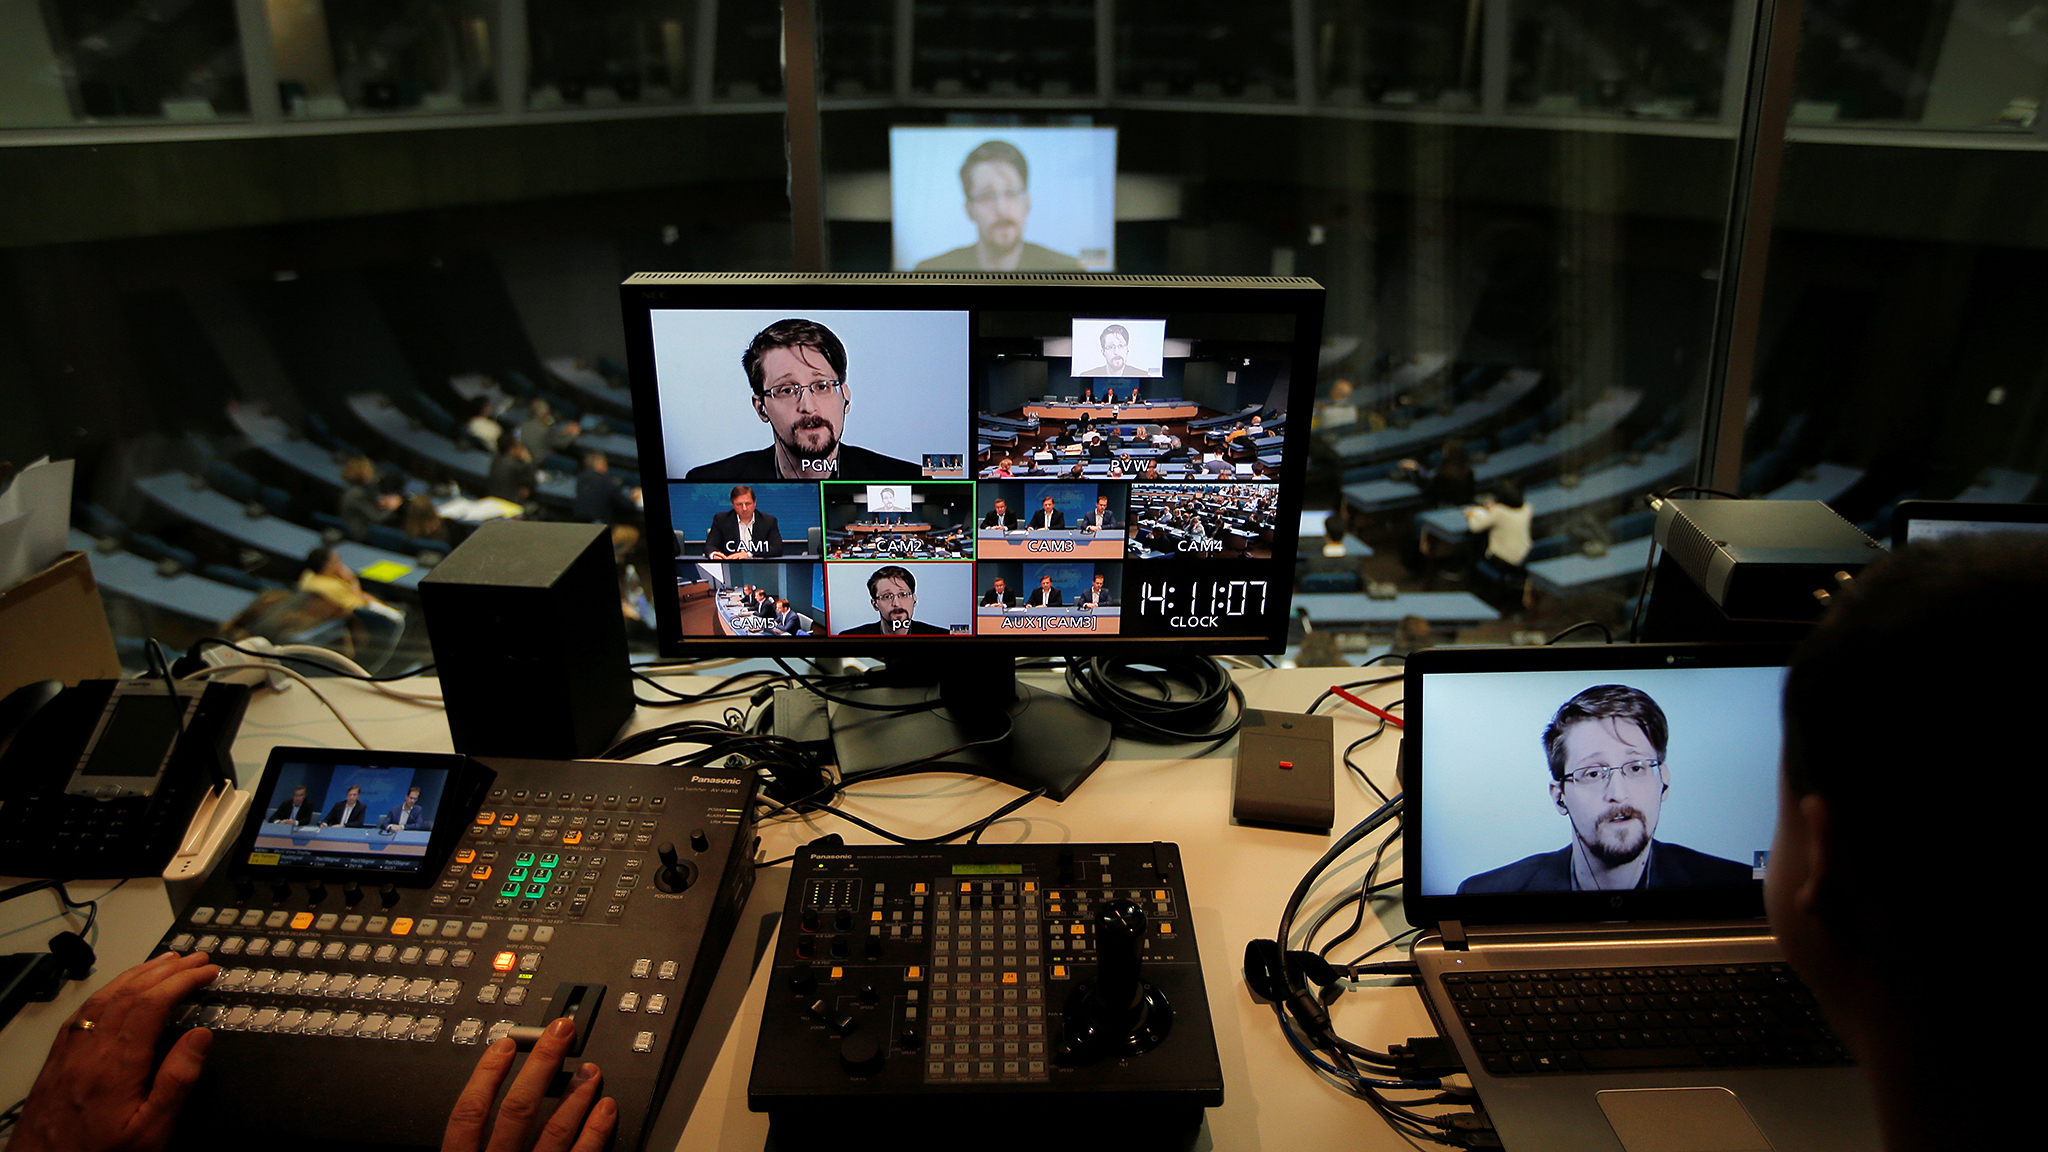 In search of the real Edward Snowden